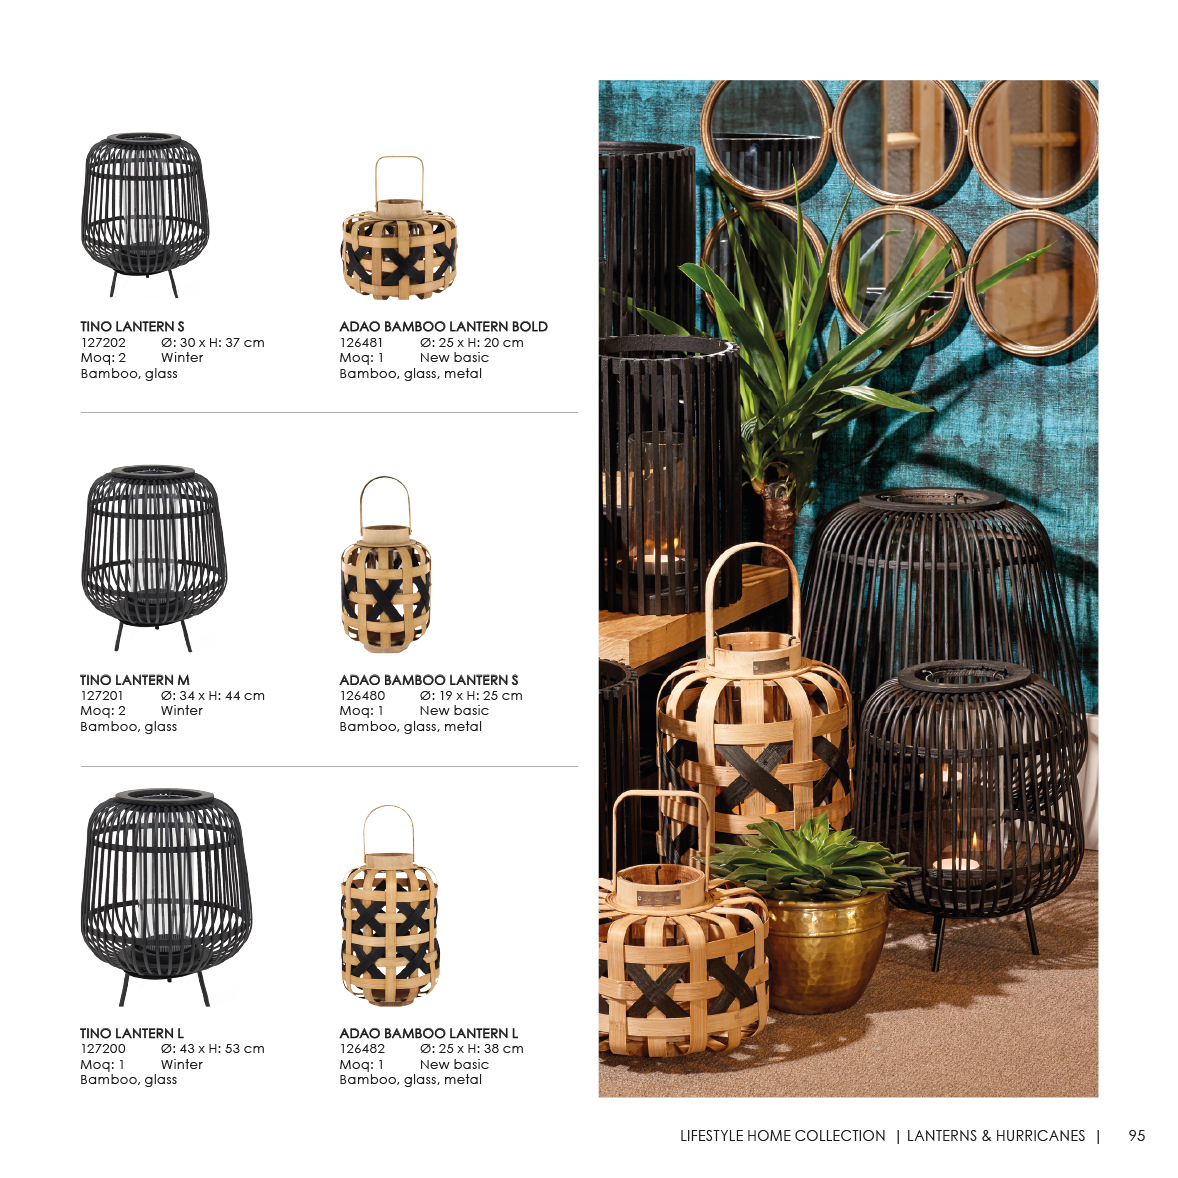 Lanterns hurricanes lifestyle home collection - Lifestyle home collection ...